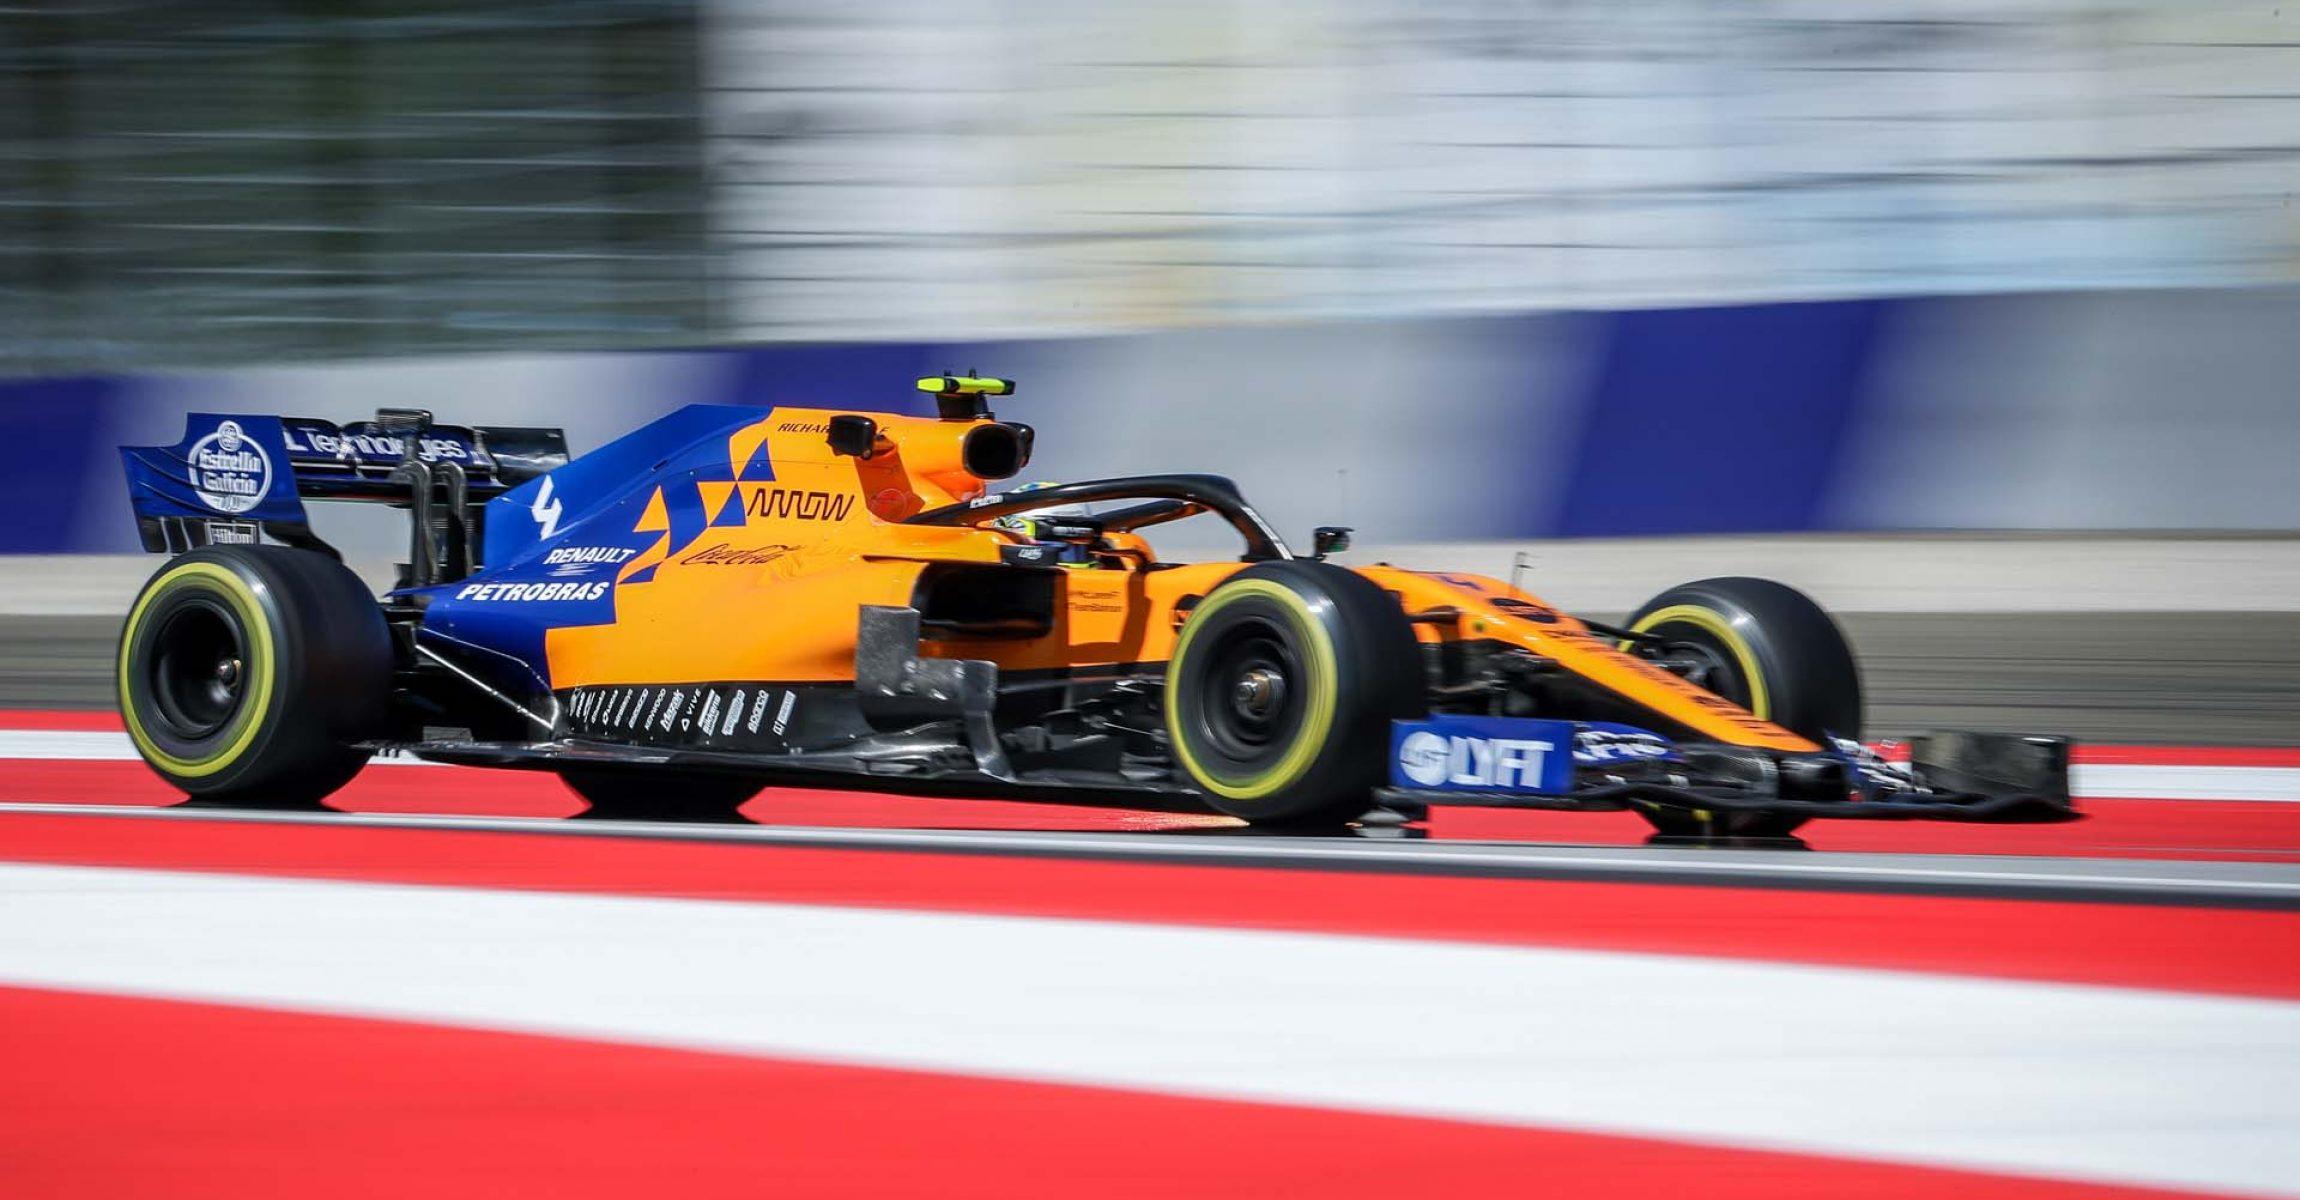 SPIELBERG,AUSTRIA,28.JUN.19 - MOTORSPORTS, FORMULA 1 - Grand Prix of Austria, Red Bull Ring, free practice. Image shows Lando Norris (GBR/ McLaren). Photo: GEPA pictures/ Harald Steiner - For editorial use only. Image is free of charge.